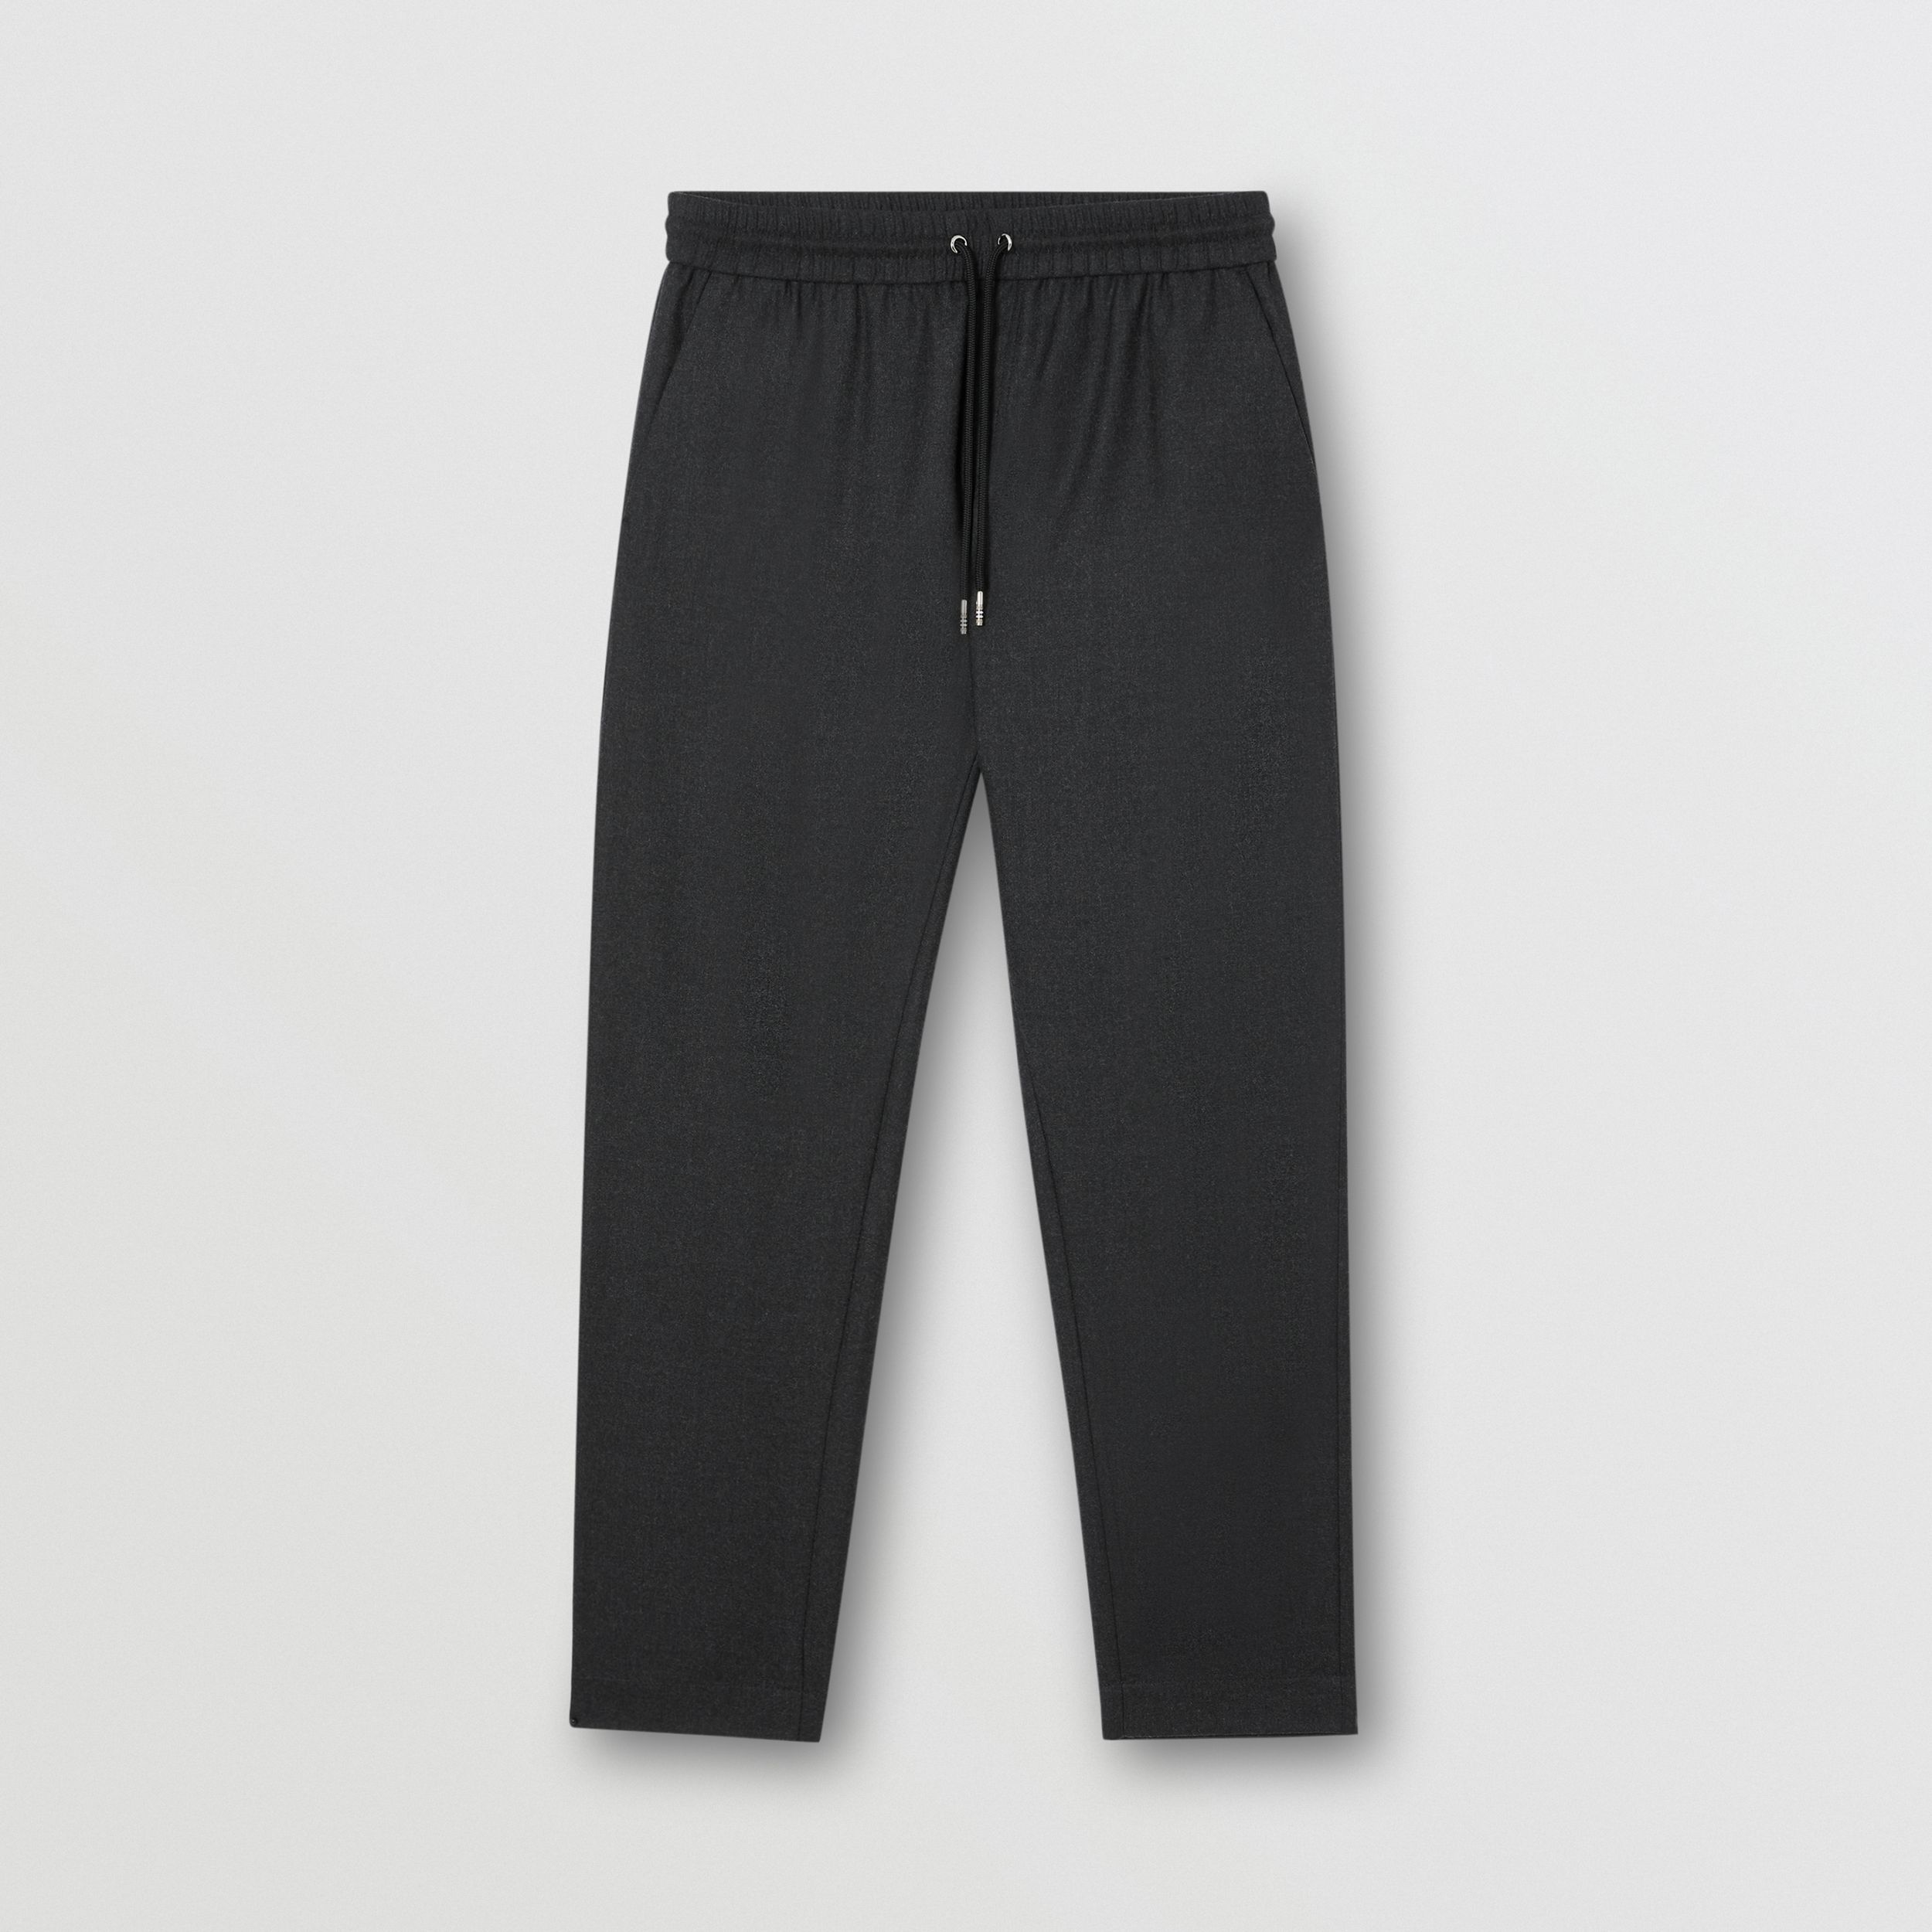 Monogram Motif Wool Jogging Pants in Charcoal Melange - Men | Burberry Hong Kong S.A.R. - 4